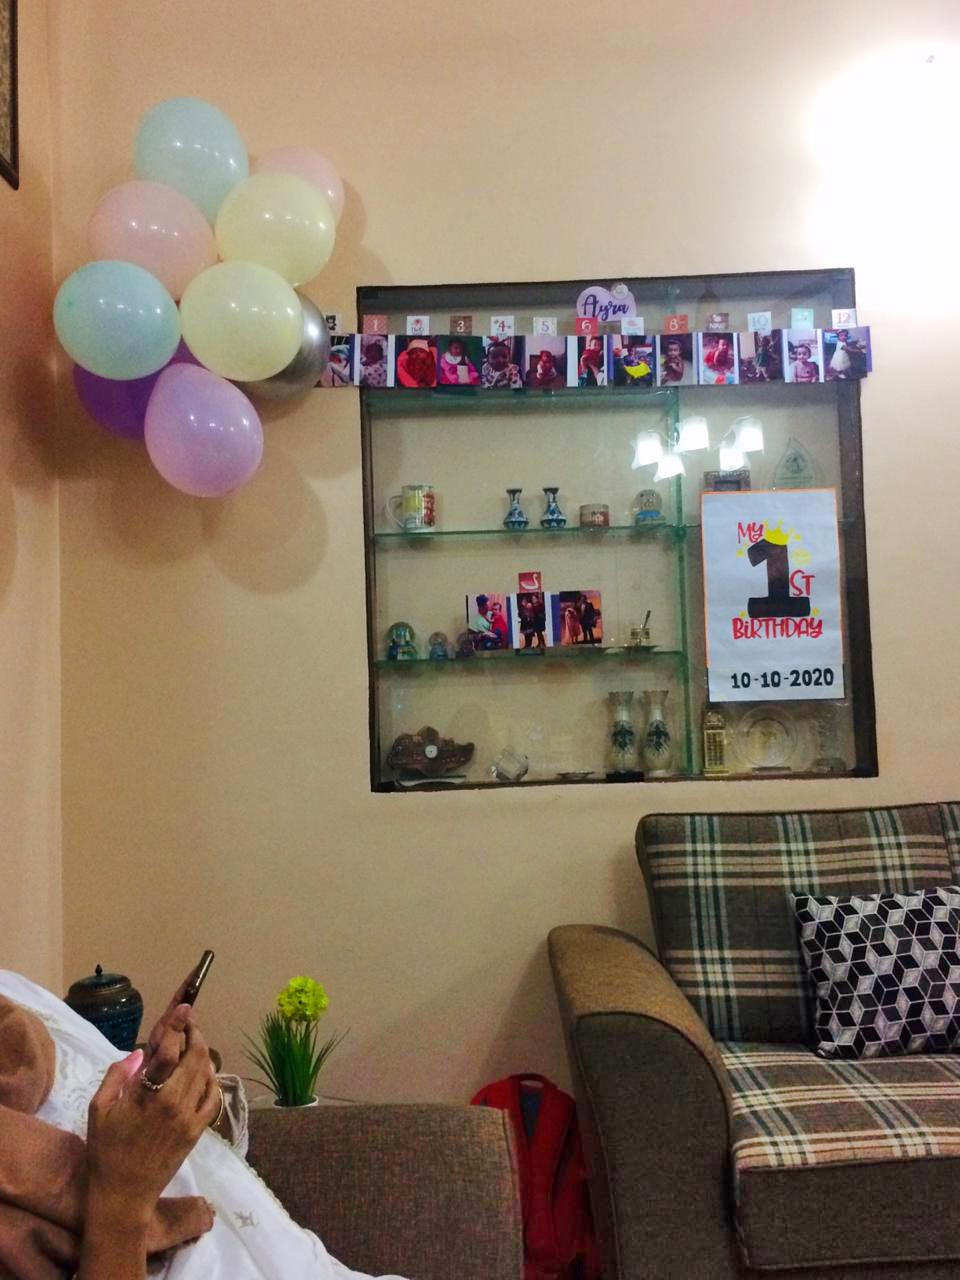 More timelines and balloons put up for Ayra's birthday.